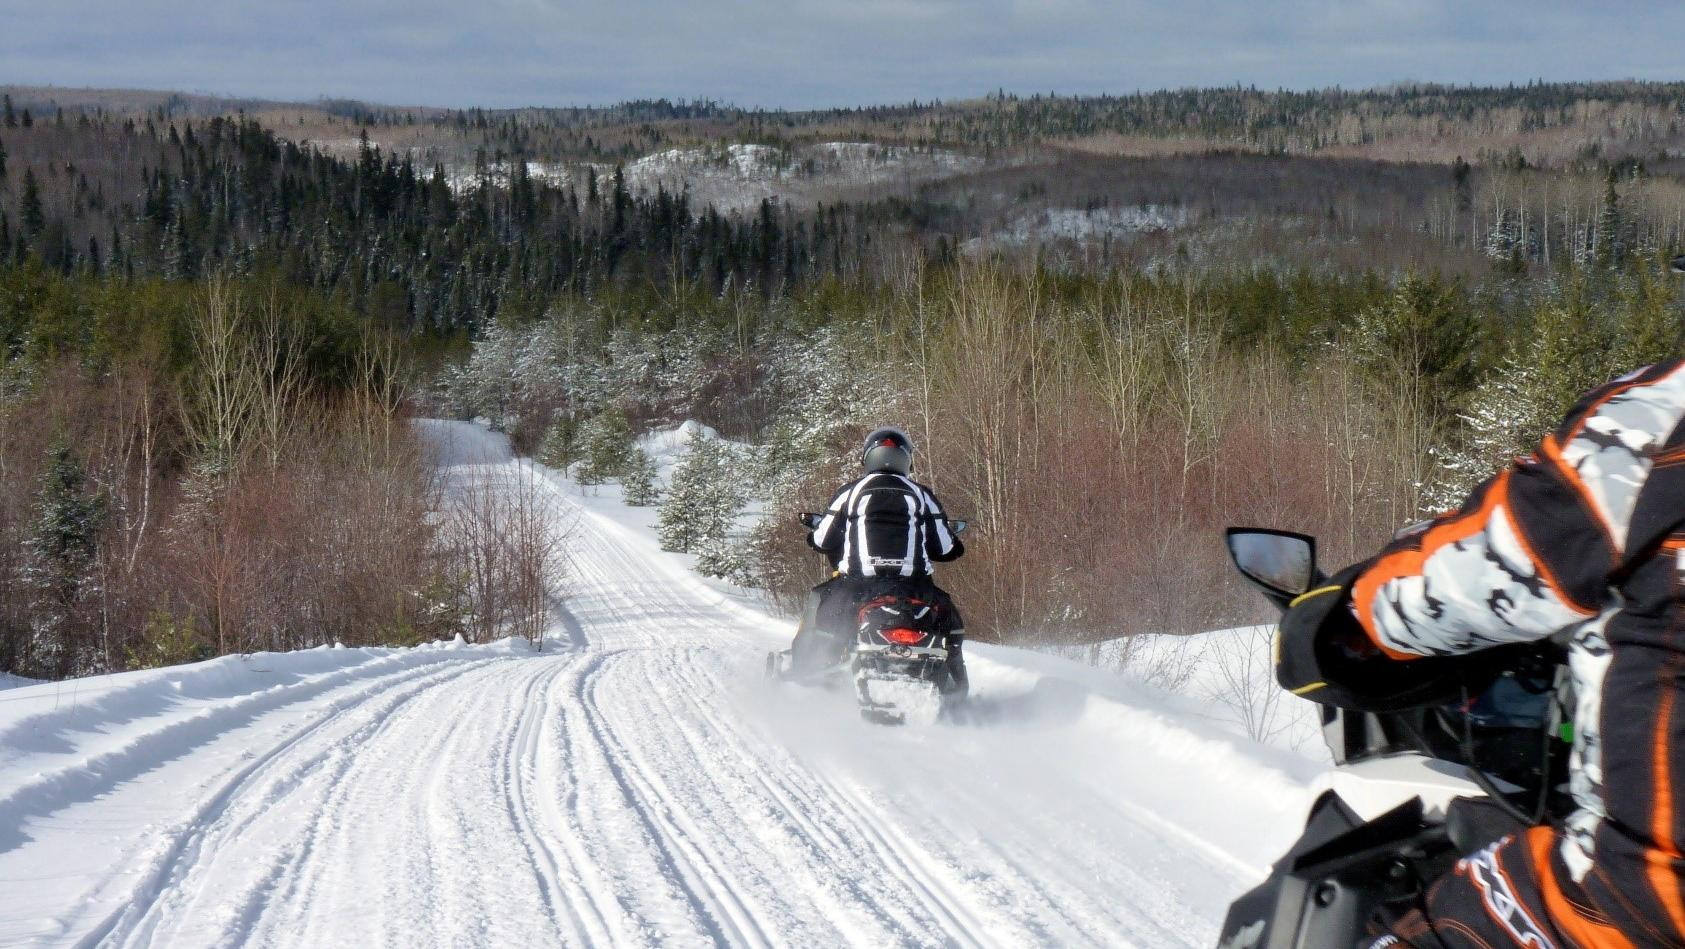 Two snowmobilers on a wide open trail on a bright sunny day